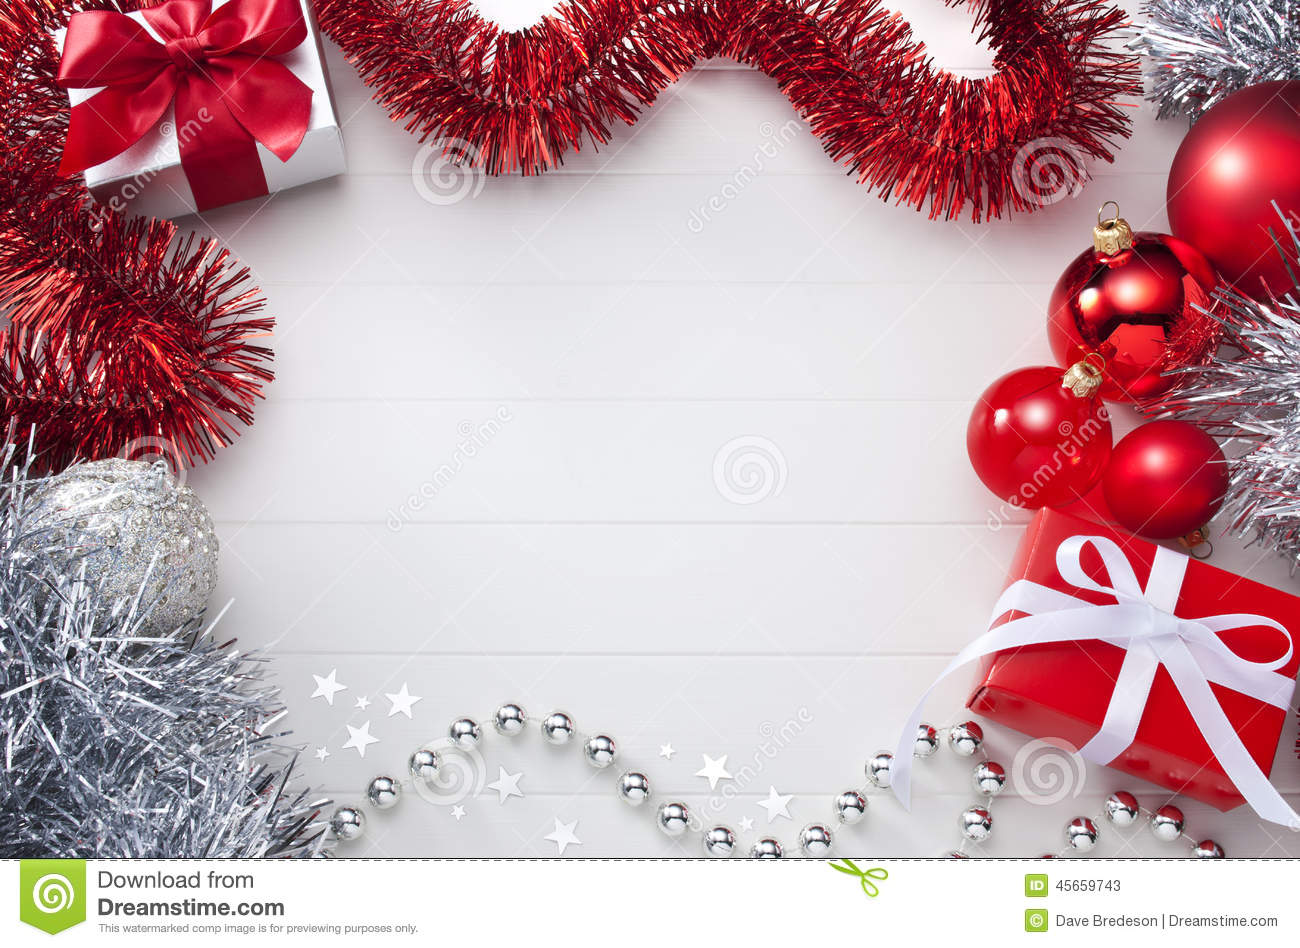 Christmas stock photos royalty free images white red christmas background a christmas background with a red and white theme voltagebd Images